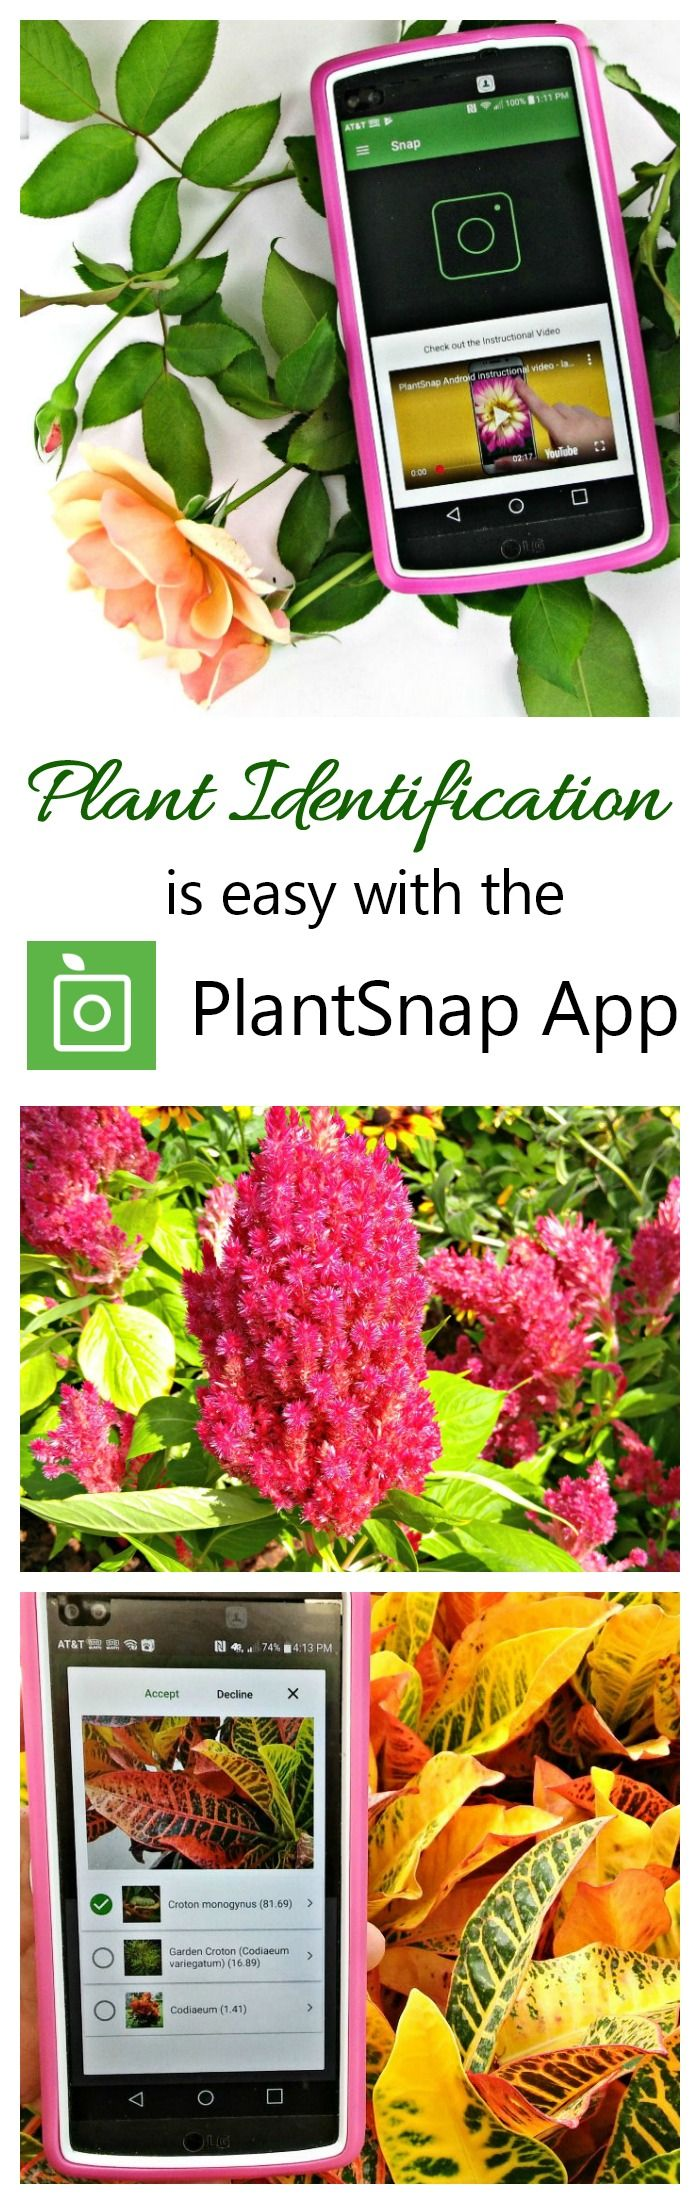 PlantSnap Mobile App Tips and Tricks for Best Results